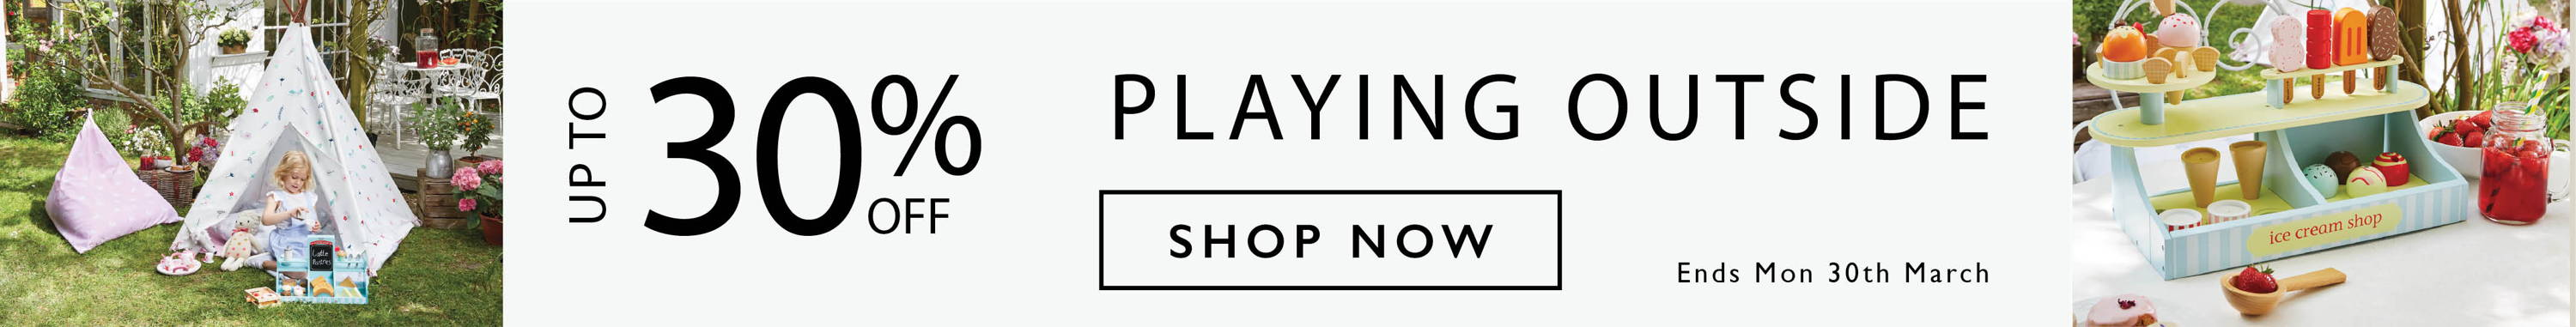 Up to 30% off playing outside. Shop now.